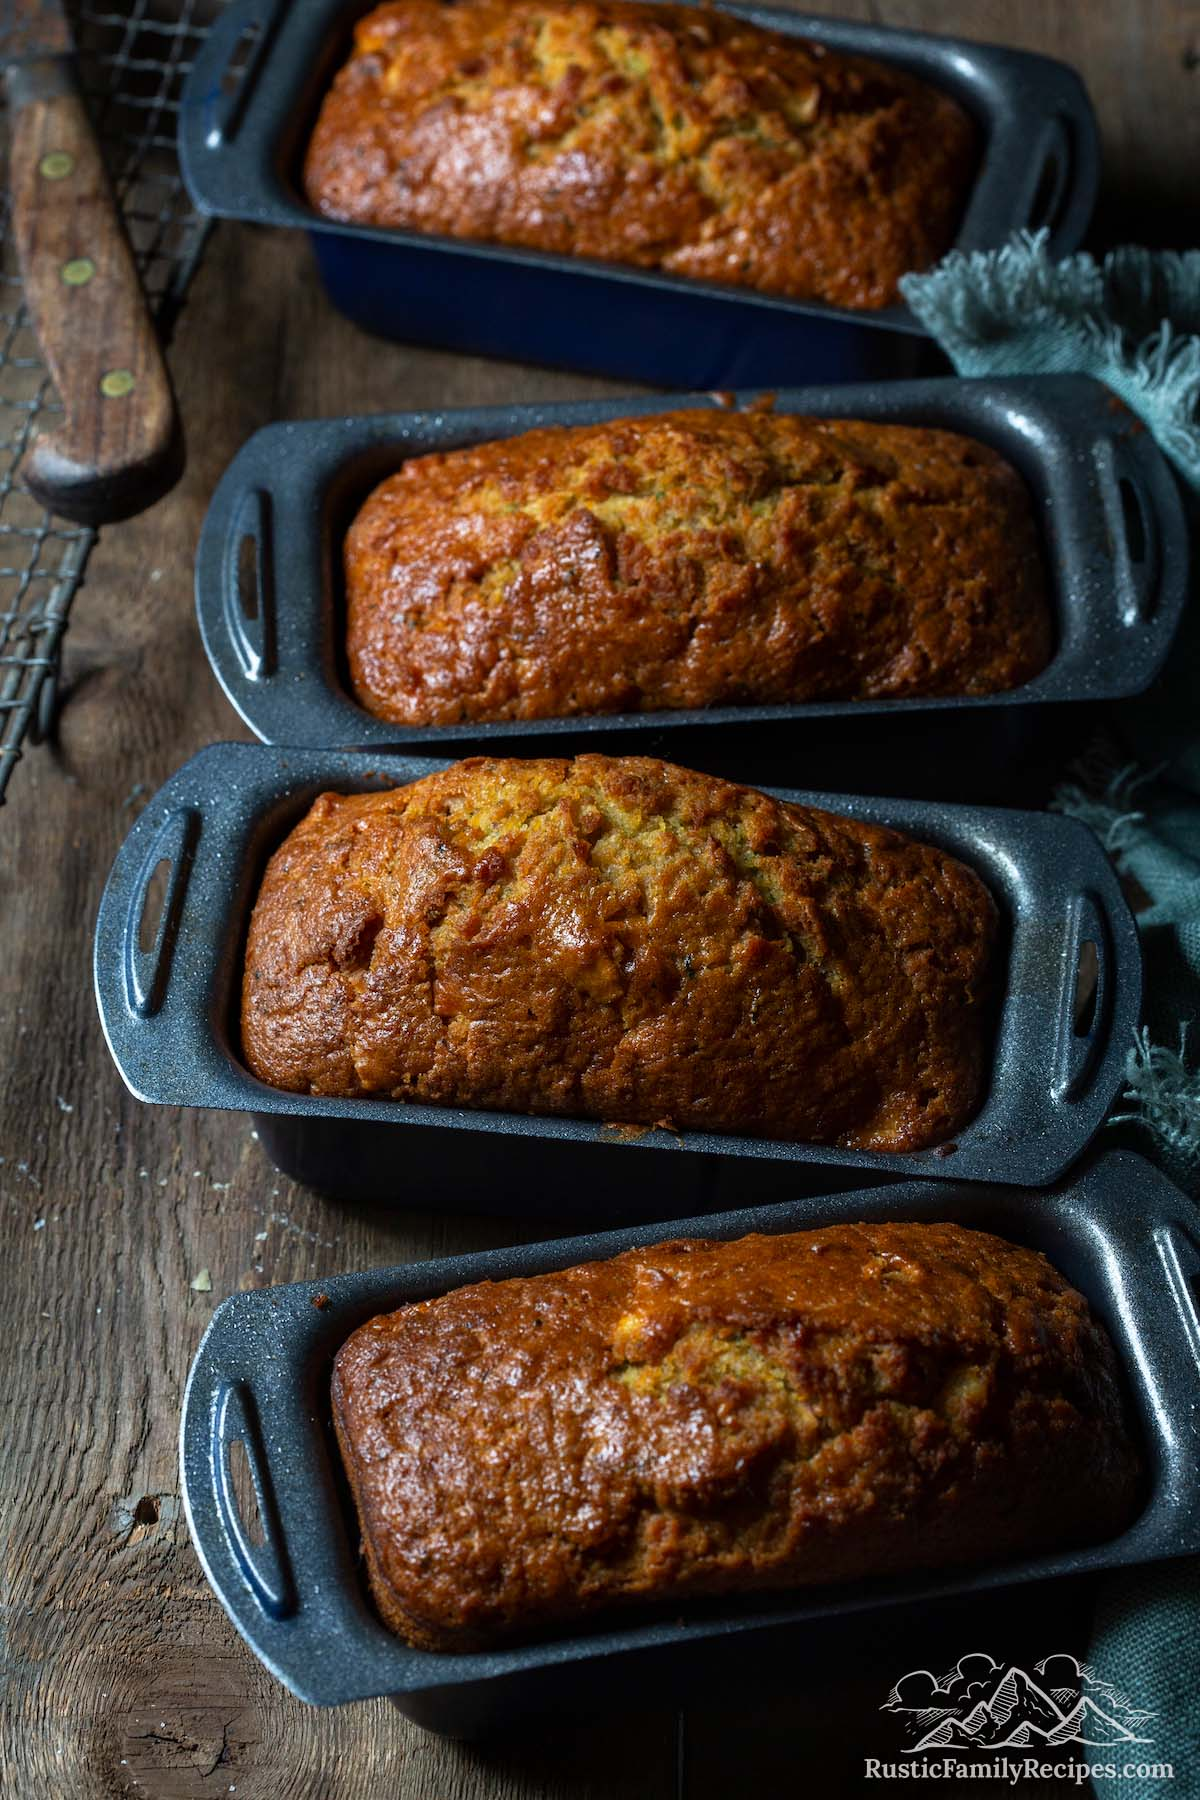 Loaves of mini zucchini breads in their baking tins